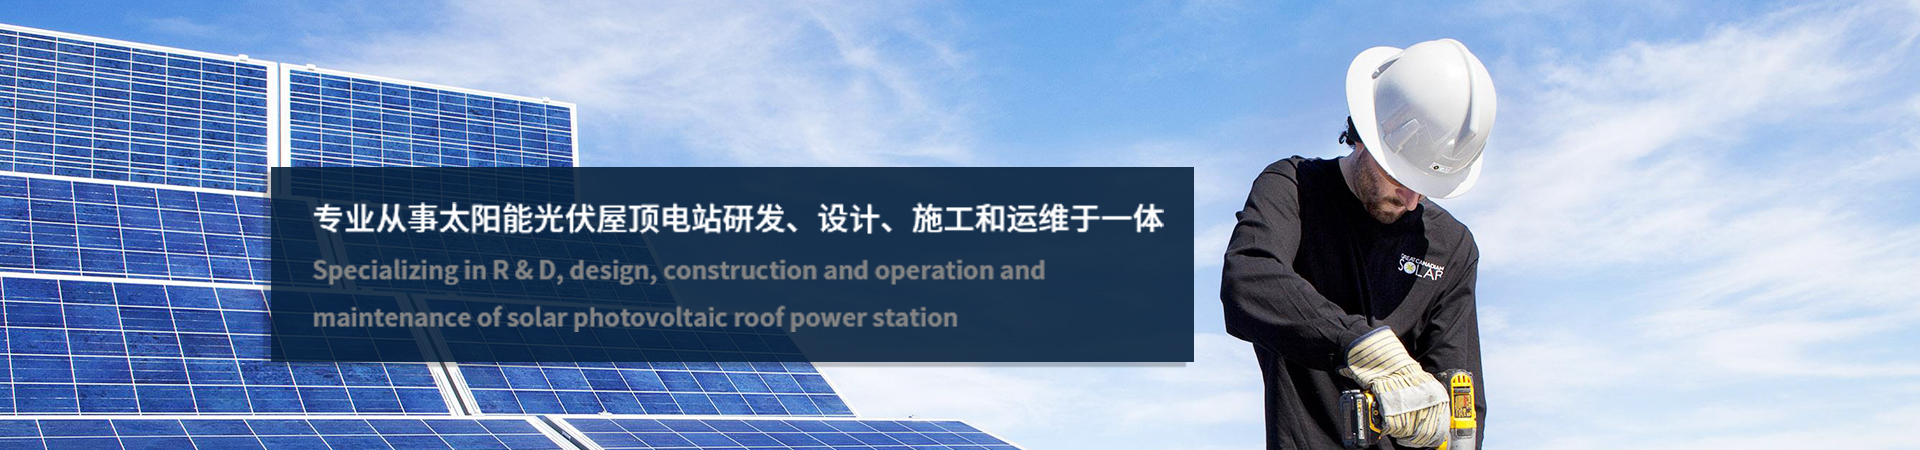 http://www.jwsolar.cn/data/upload/202002/20200221085037_205.jpg